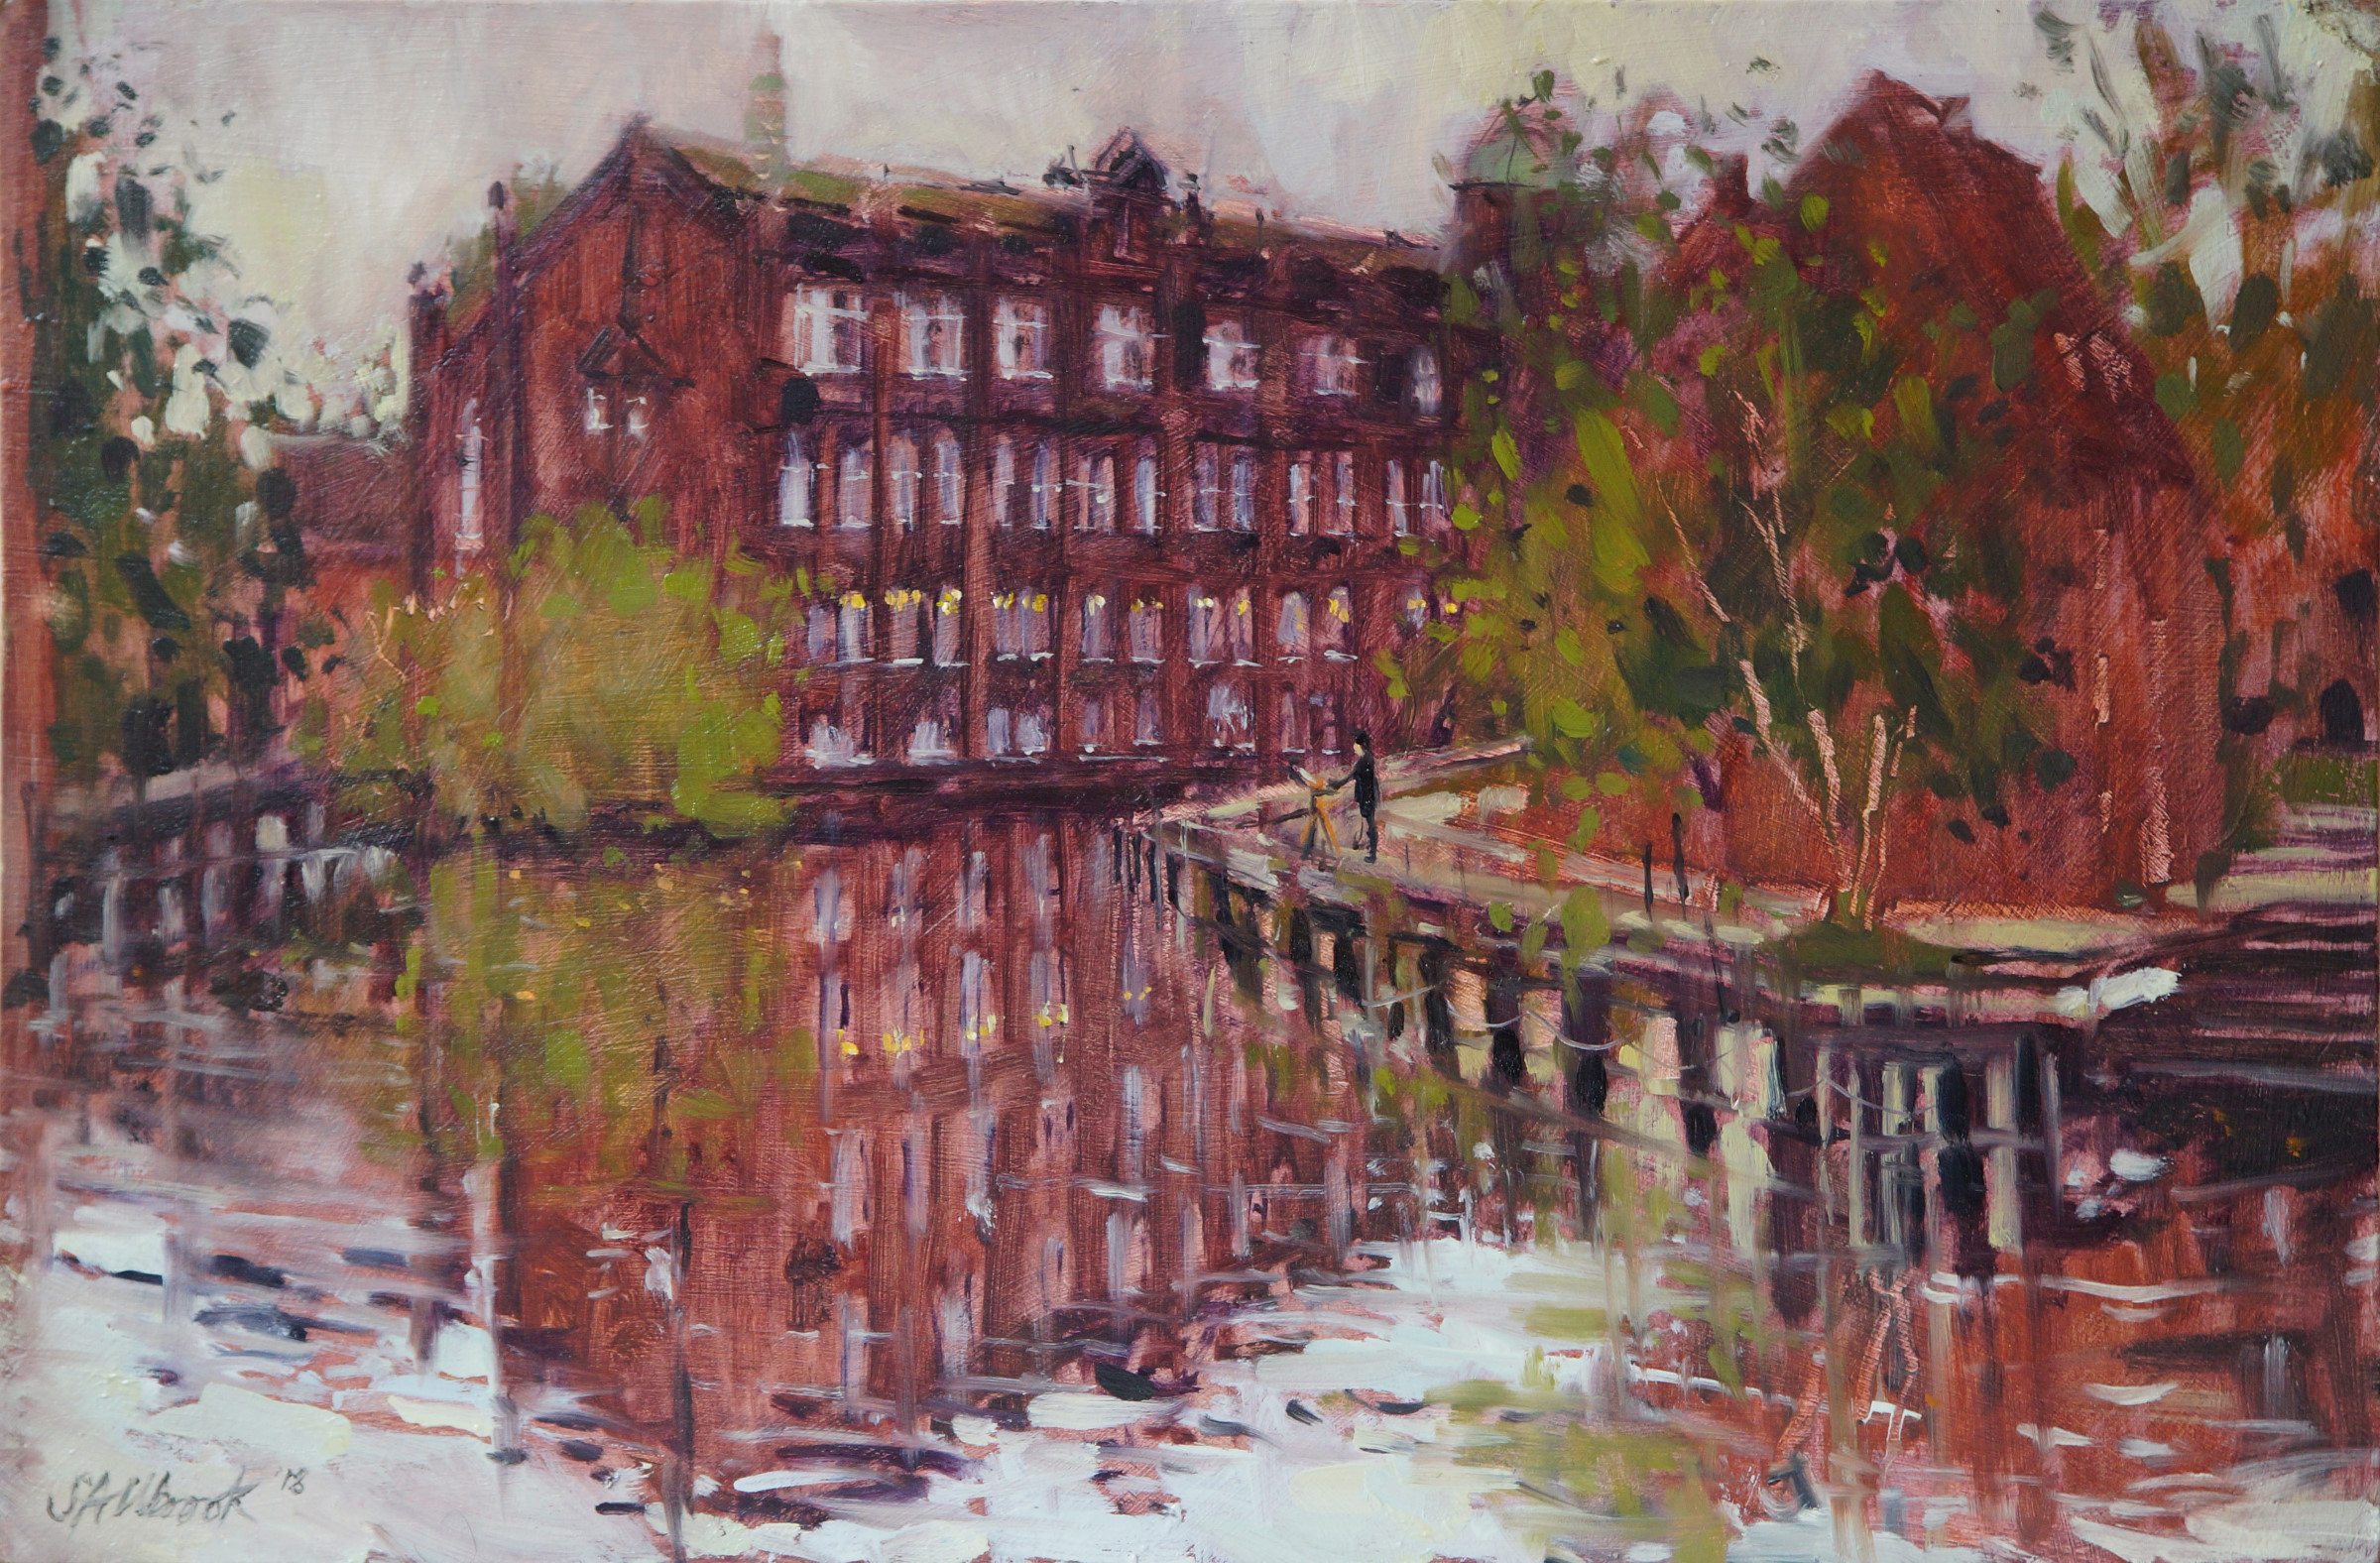 Sarah Allbrook, 'Art School Reflections', Fye Bridge, Oil, 12x18in, SOLD